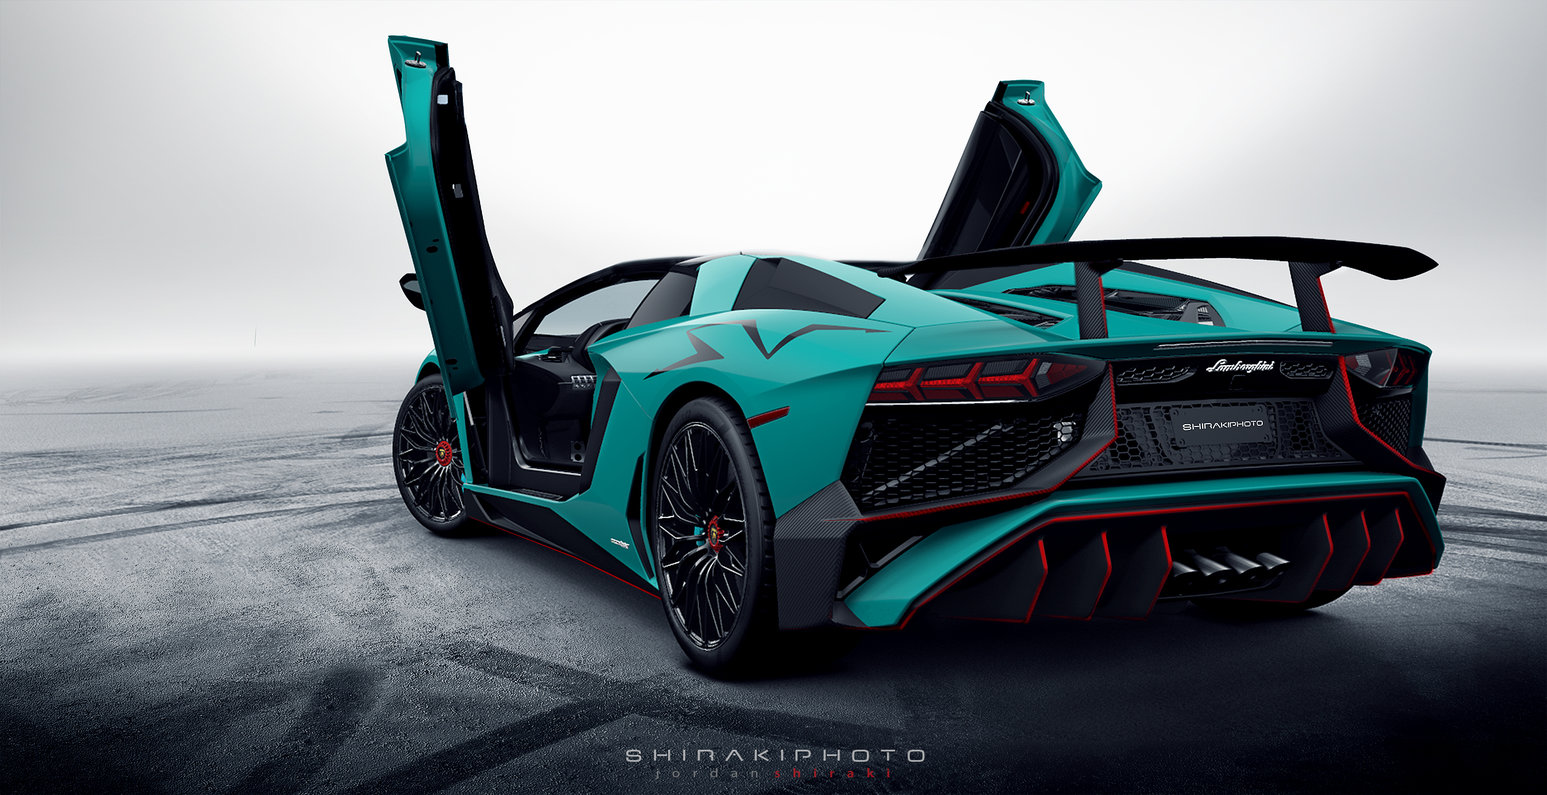 Lamborghini Aventador Sv Roadster Debuting At Pebble Beach